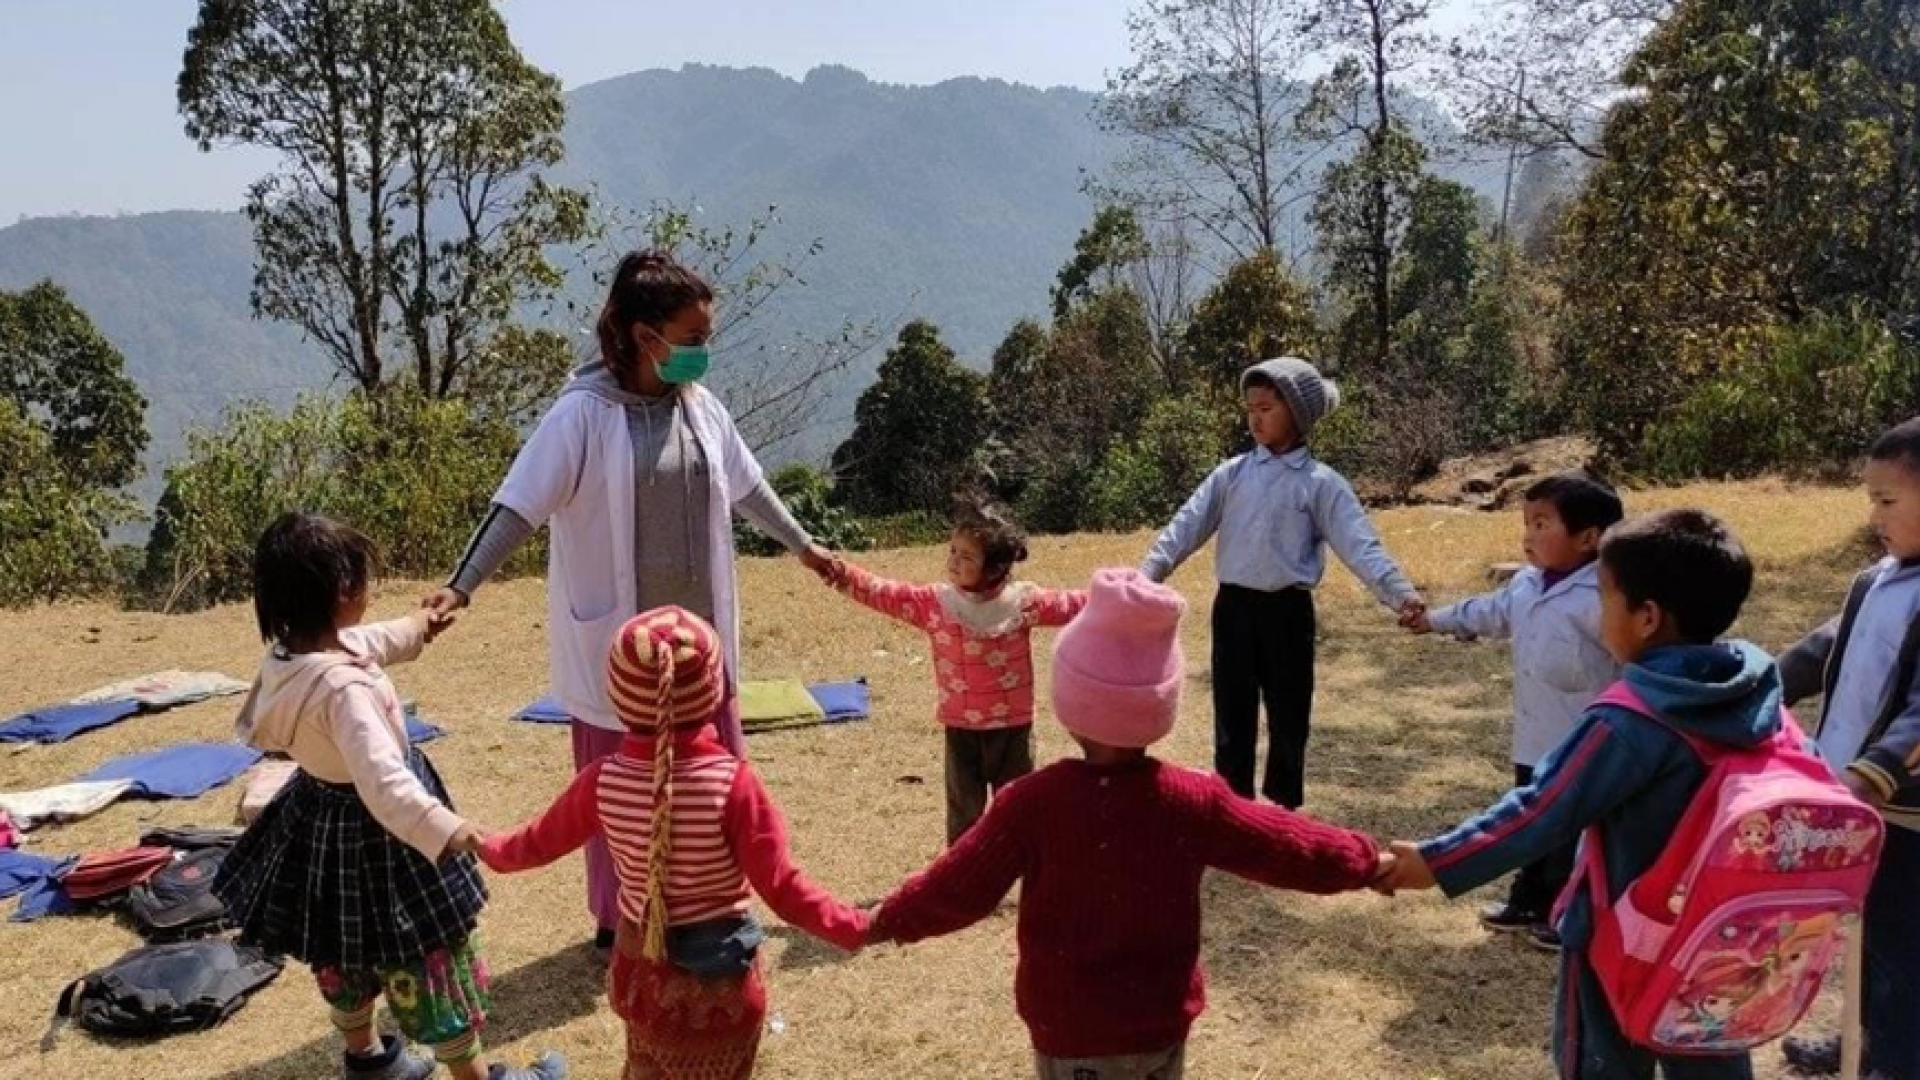 SoeurEmmanuelle_Nepal_Child-Protection-Centers-and-Services_header.png